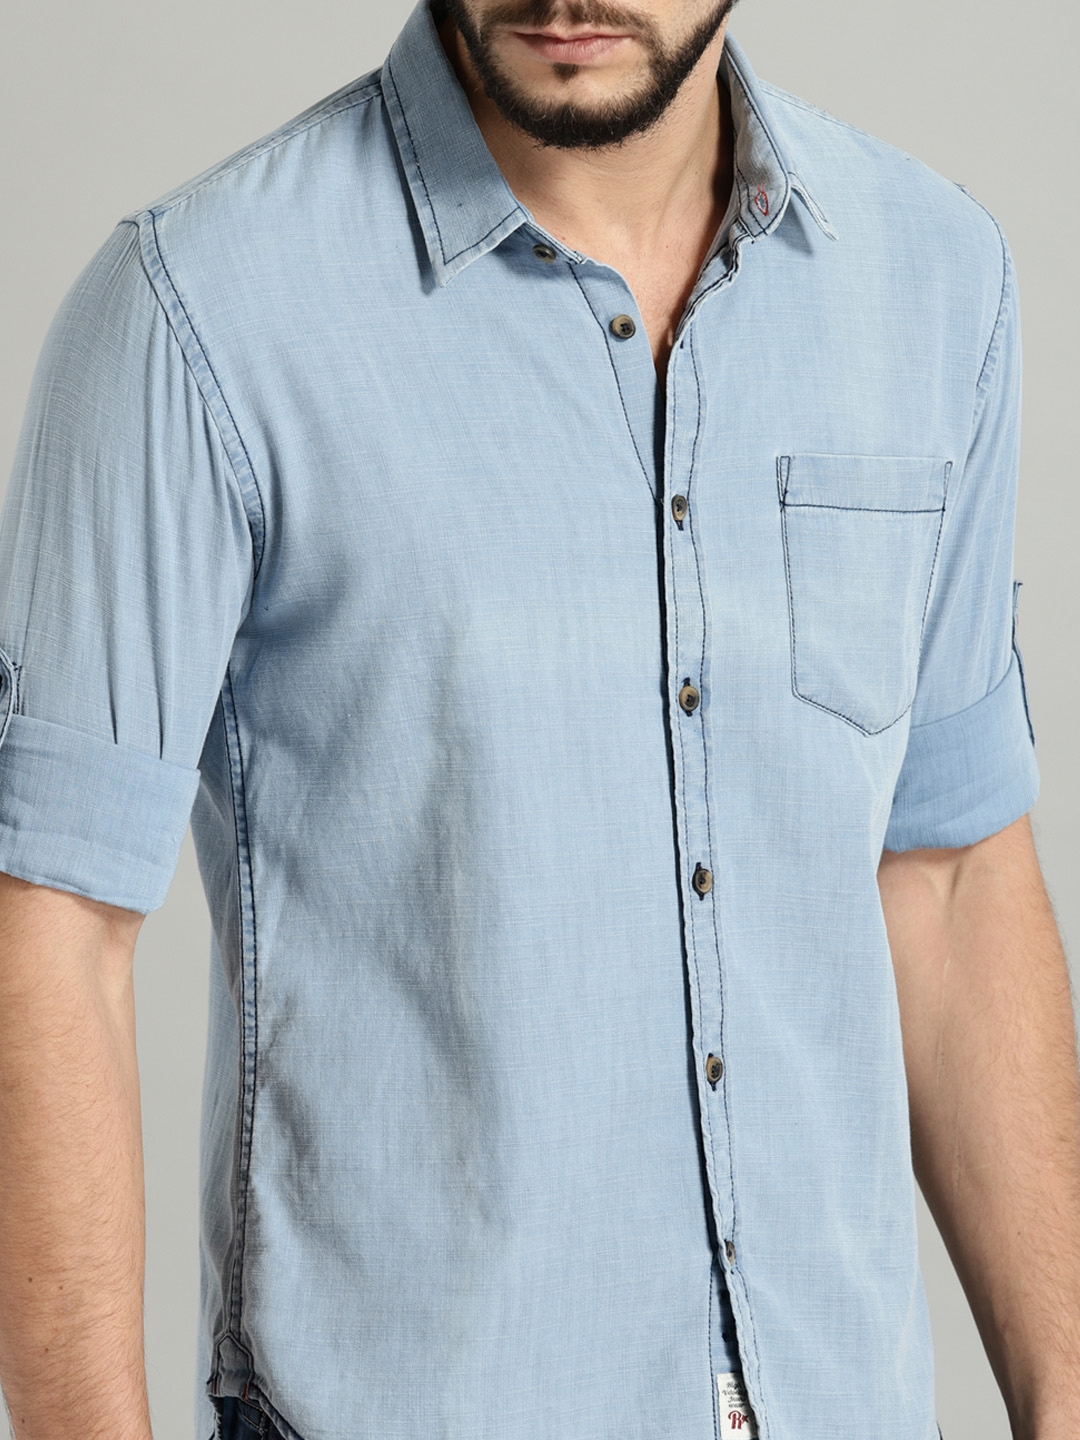 ebf0f0f216 Buy Roadster Men Blue Regular Fit Solid Casual Chambray Shirt ...